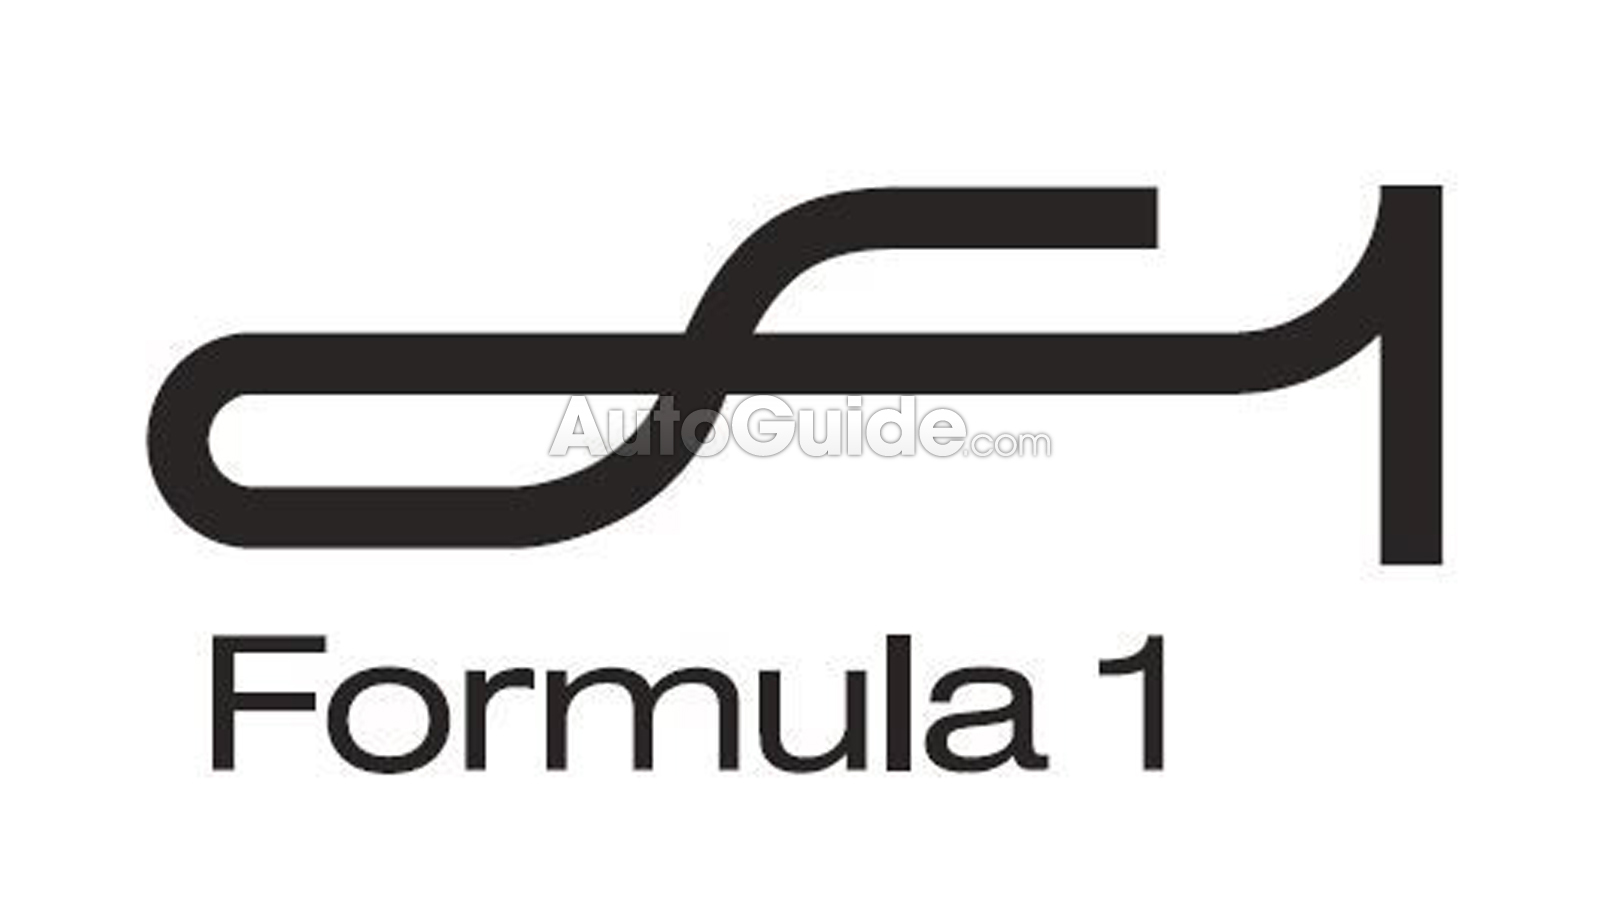 Trademark Filings Reveal Proposals for new Formula One ...